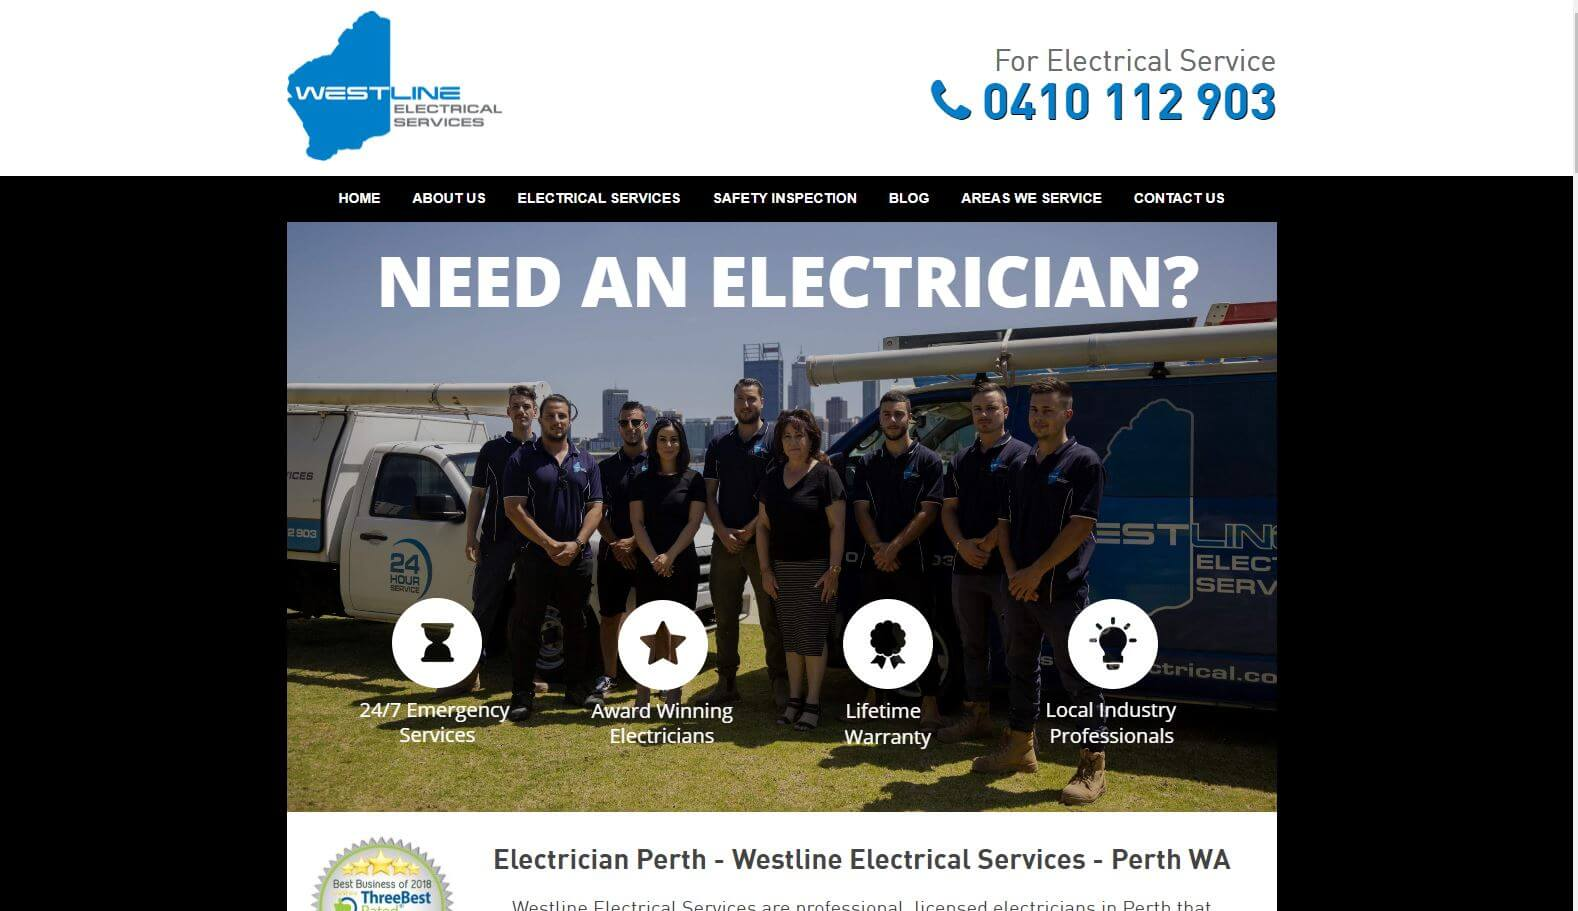 westline electrical services best electricians in perth